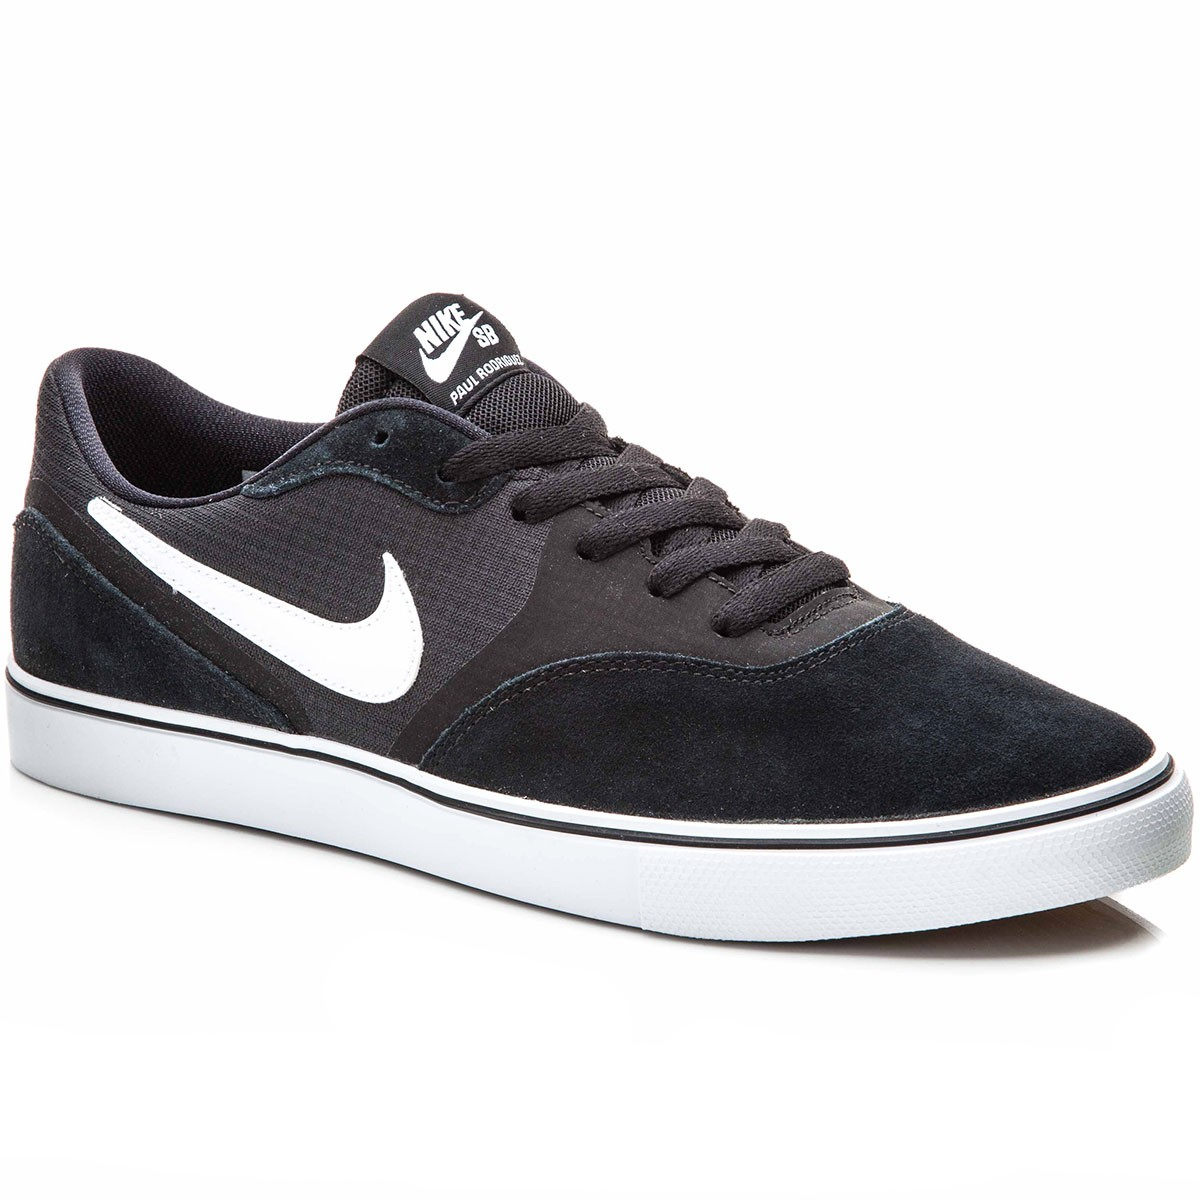 Nike Skate Shoes Paul Rodriguez